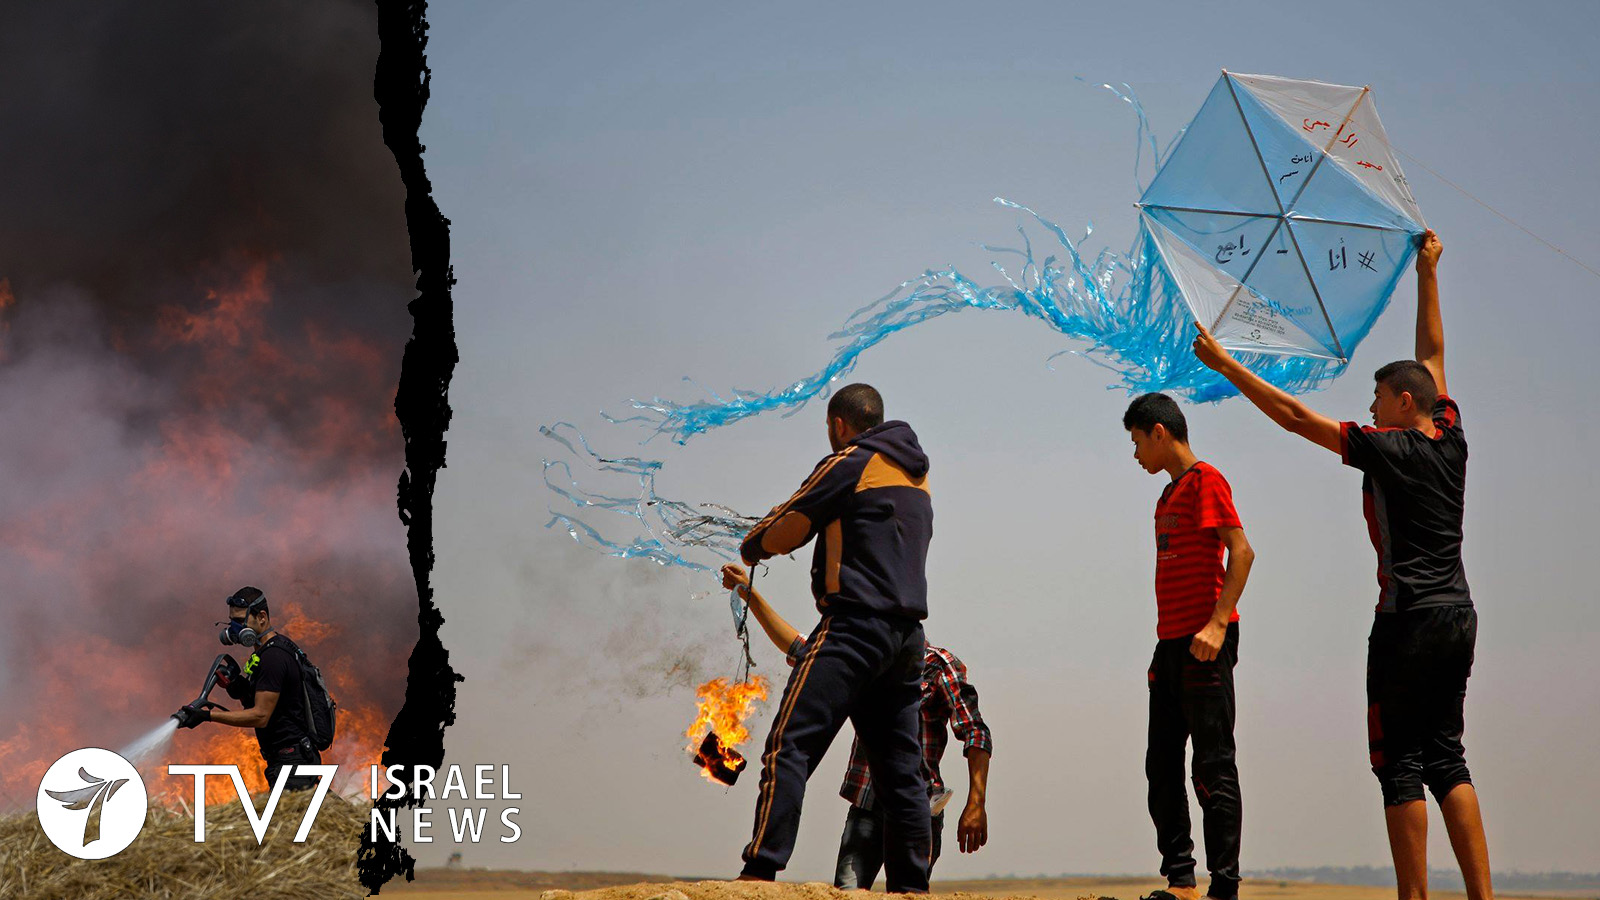 Dozens of incendiary balloons launched from Gaza into Israel